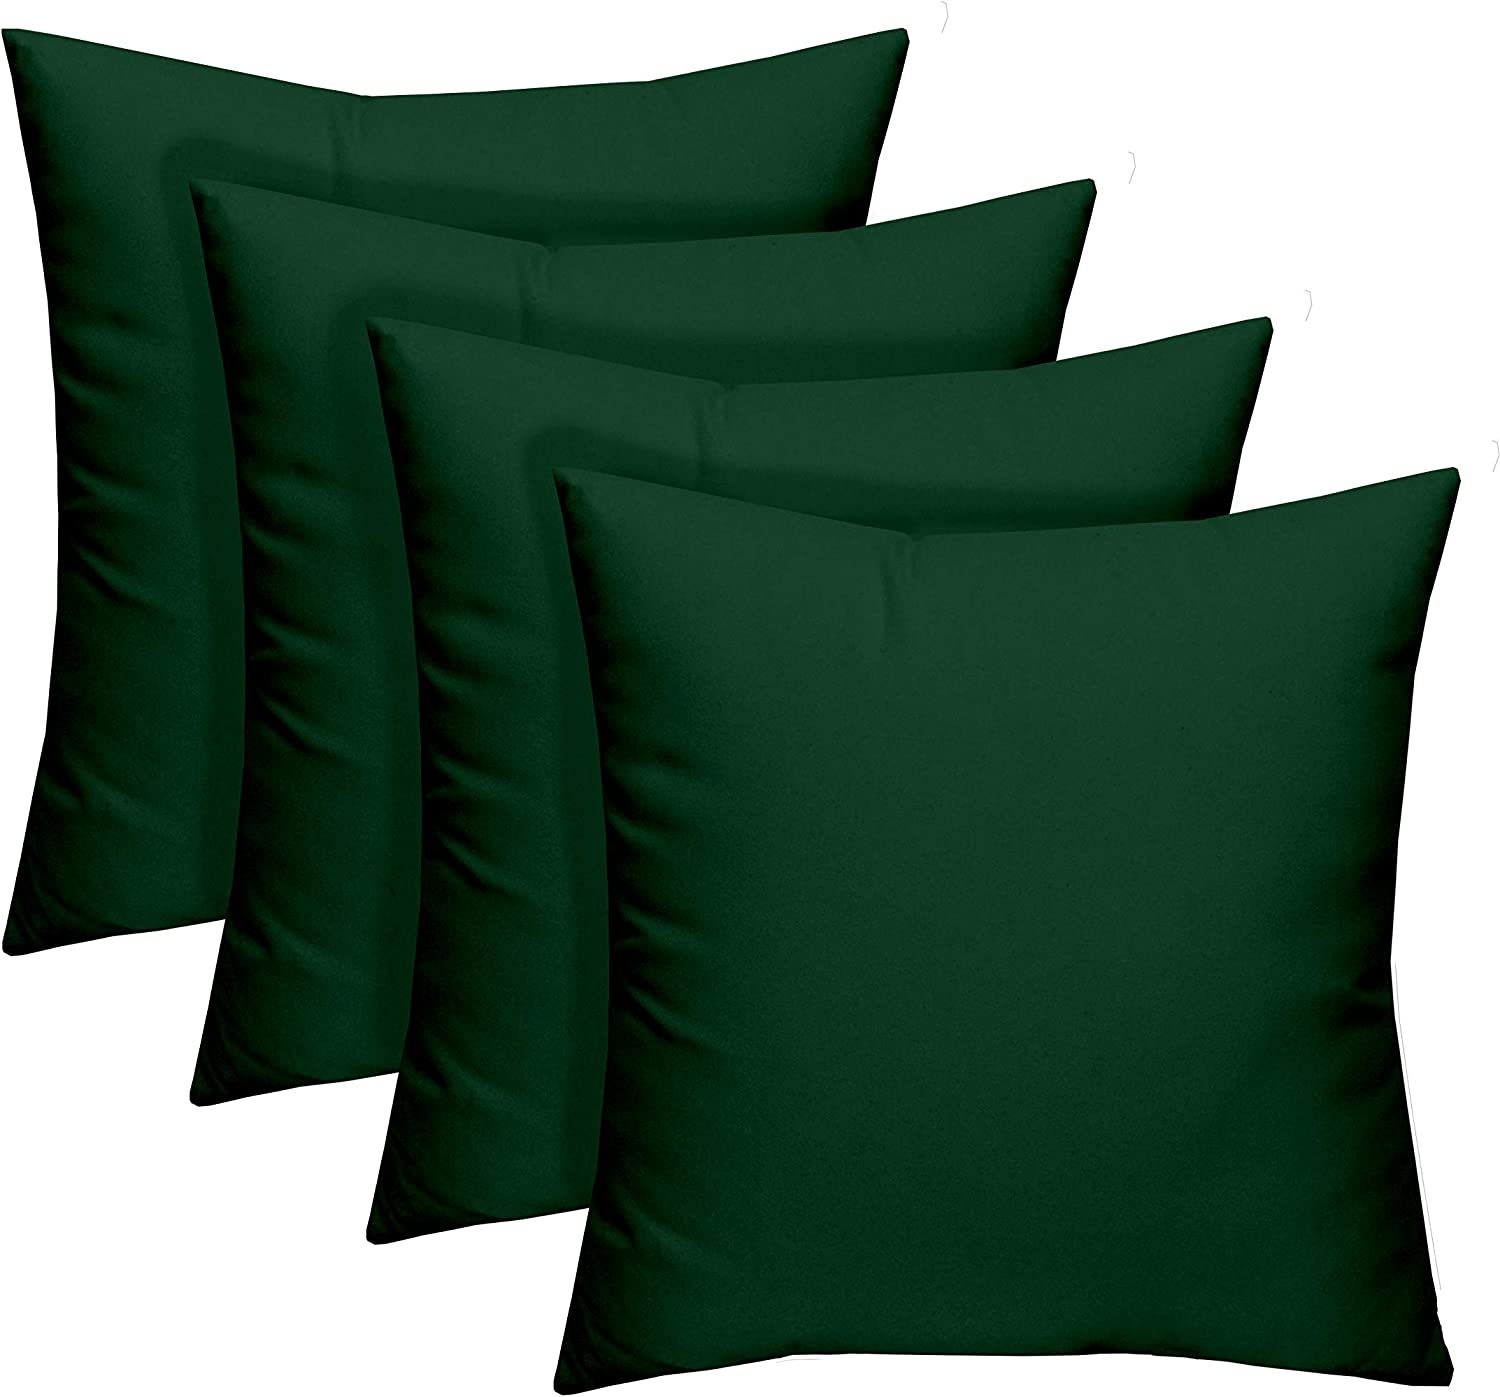 Set of 4 – Indoor Outdoor 17 Square Decorative Throw Toss Pillows – Solid Hunter Green